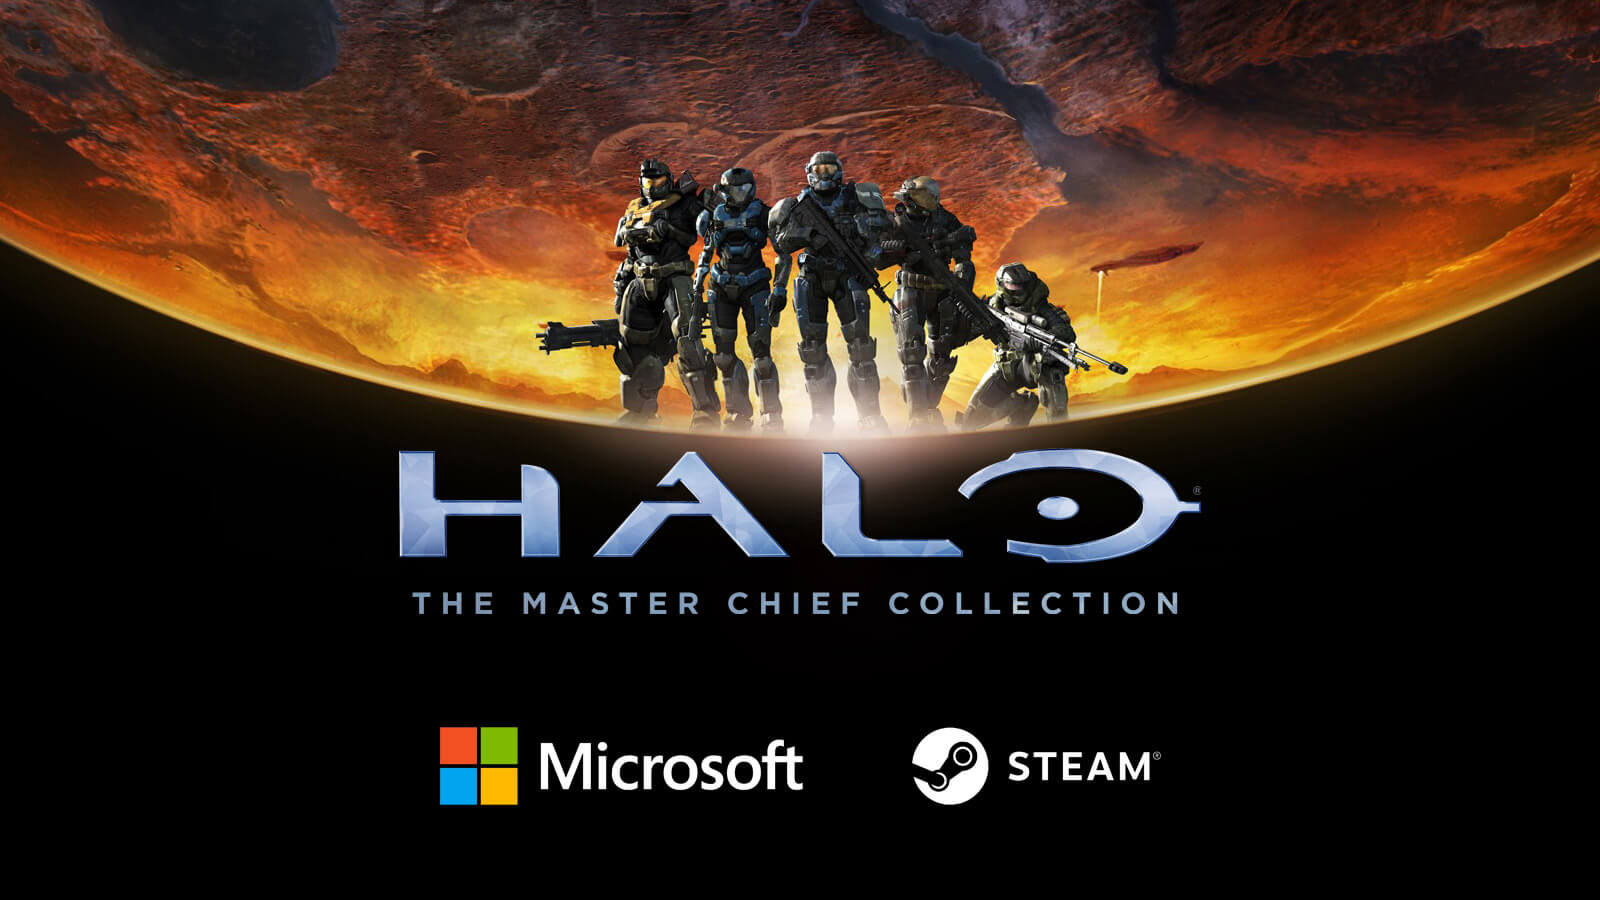 Master Chief Collection Coming To Pc Adds Halo Reach